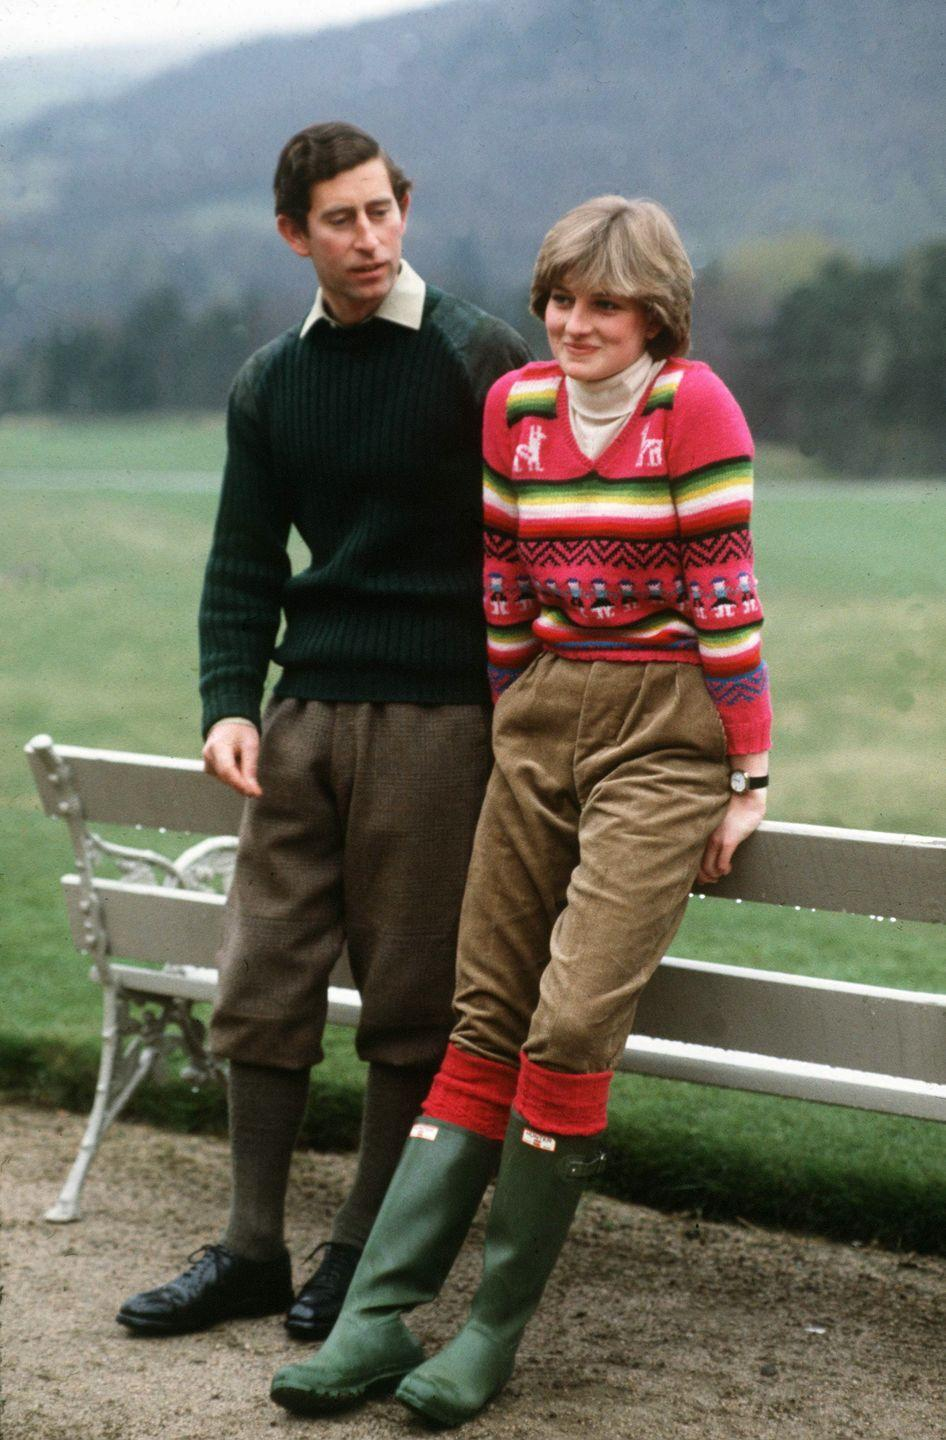 """<p>In one of her <a href=""""https://www.townandcountrymag.com/society/tradition/g34374429/princess-diana-statement-sweater-photos/"""" rel=""""nofollow noopener"""" target=""""_blank"""" data-ylk=""""slk:iconic sweater moments"""" class=""""link rapid-noclick-resp"""">iconic sweater moments</a>, Princess Diana wore this fair isle-esque pink sweater at Balmoral in 1981. </p>"""